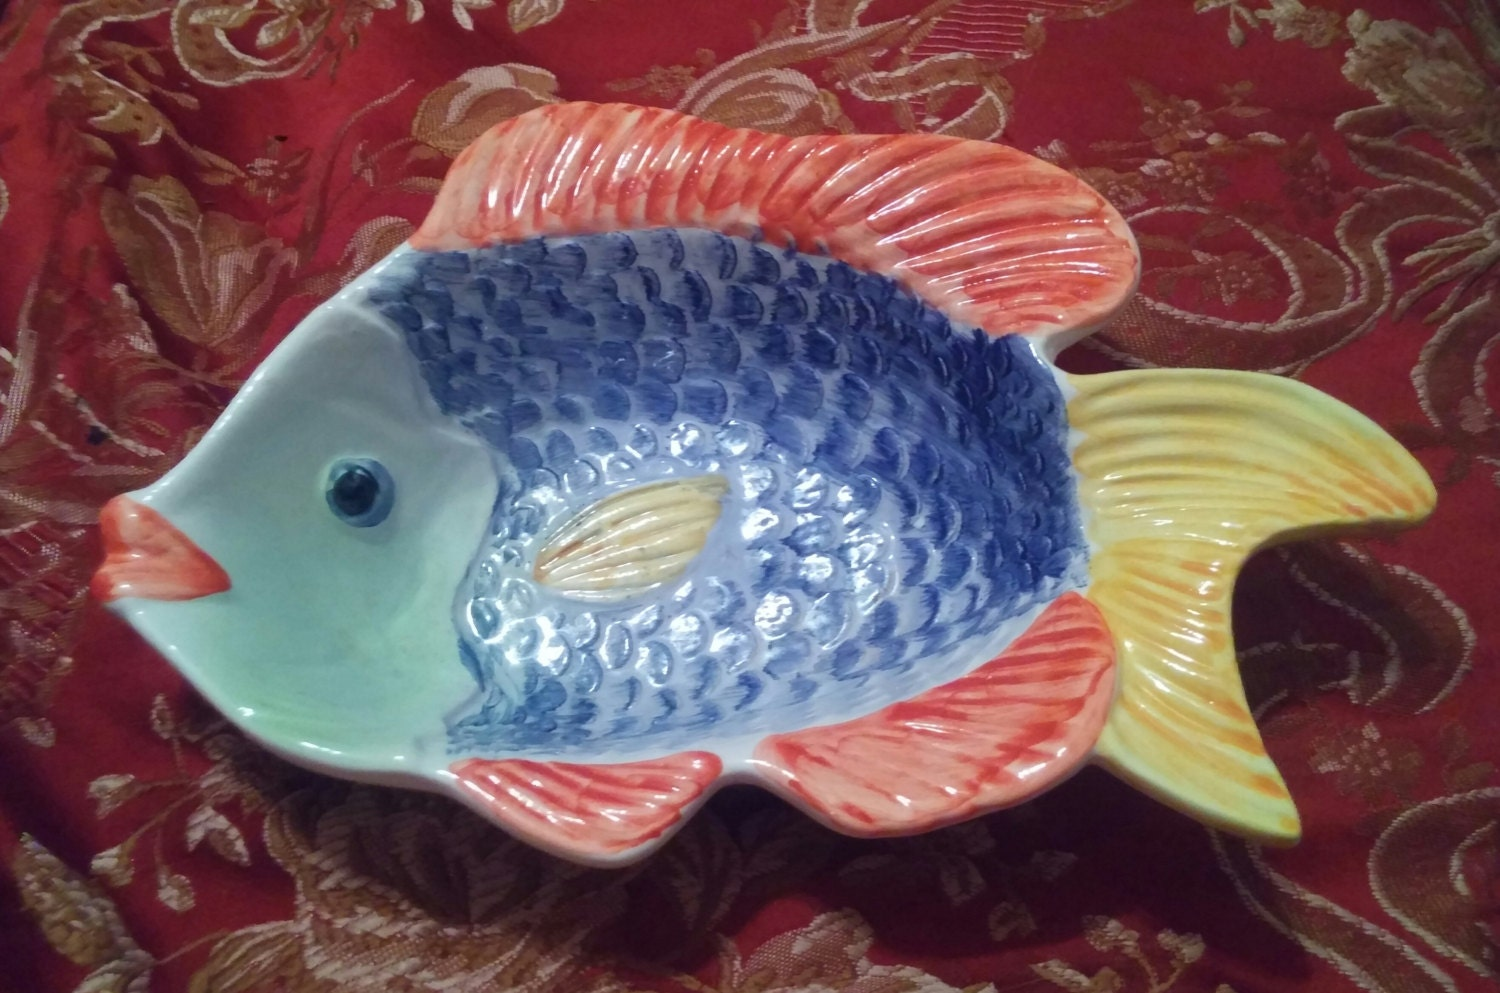 Amusing ceramic textured fish shaped bowl made in portugal for Fish shaped bowl